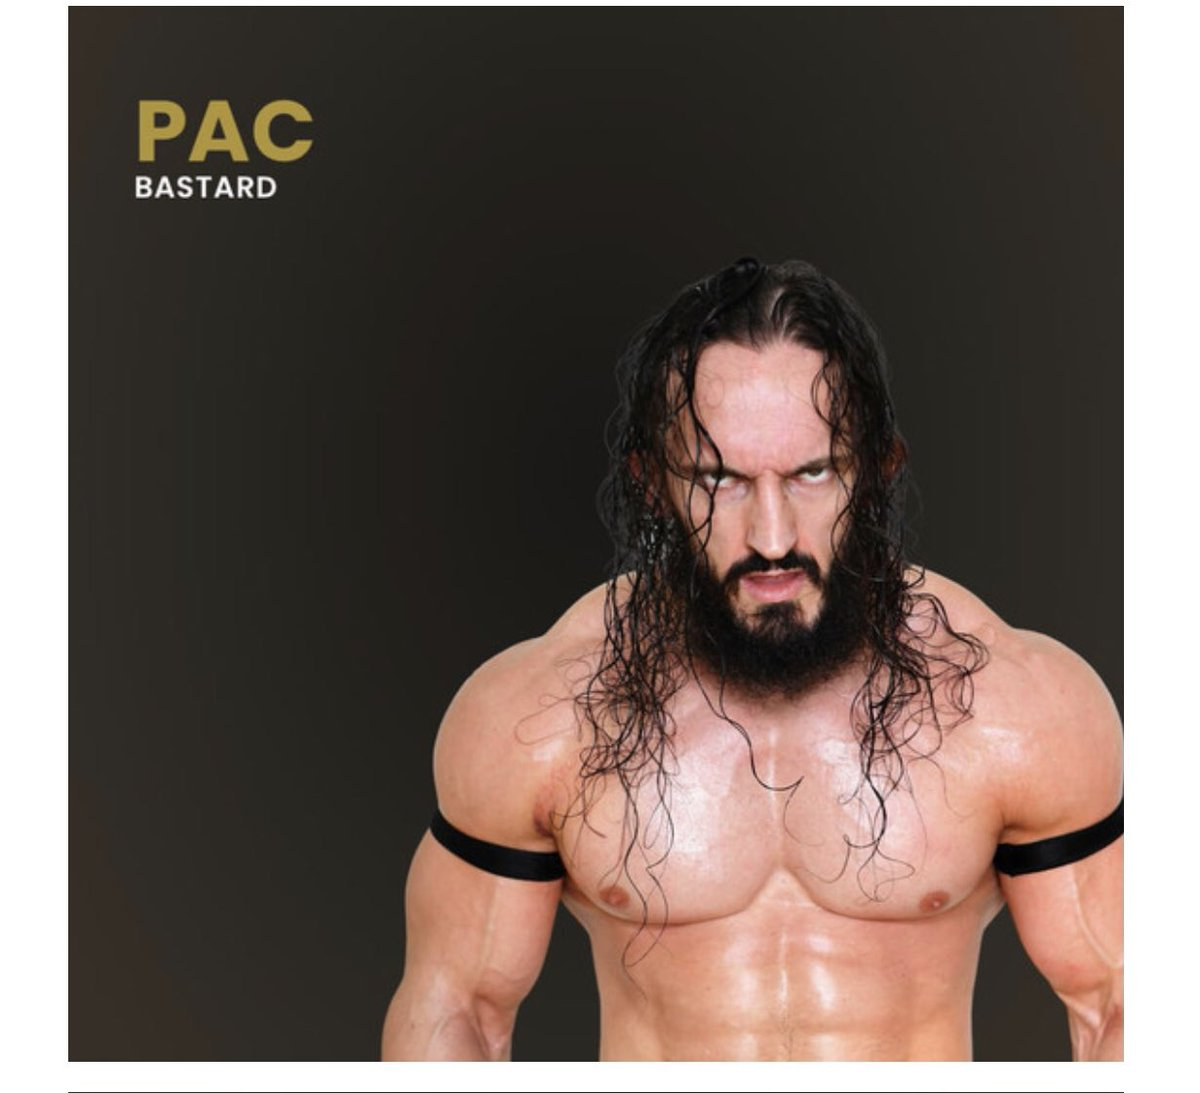 Freaking love how #AEW has PAC listed as Bastard#AEWonTNT   https://www. allelitewrestling.com/roster  &nbsp;   <br>http://pic.twitter.com/rZcytrFsTX